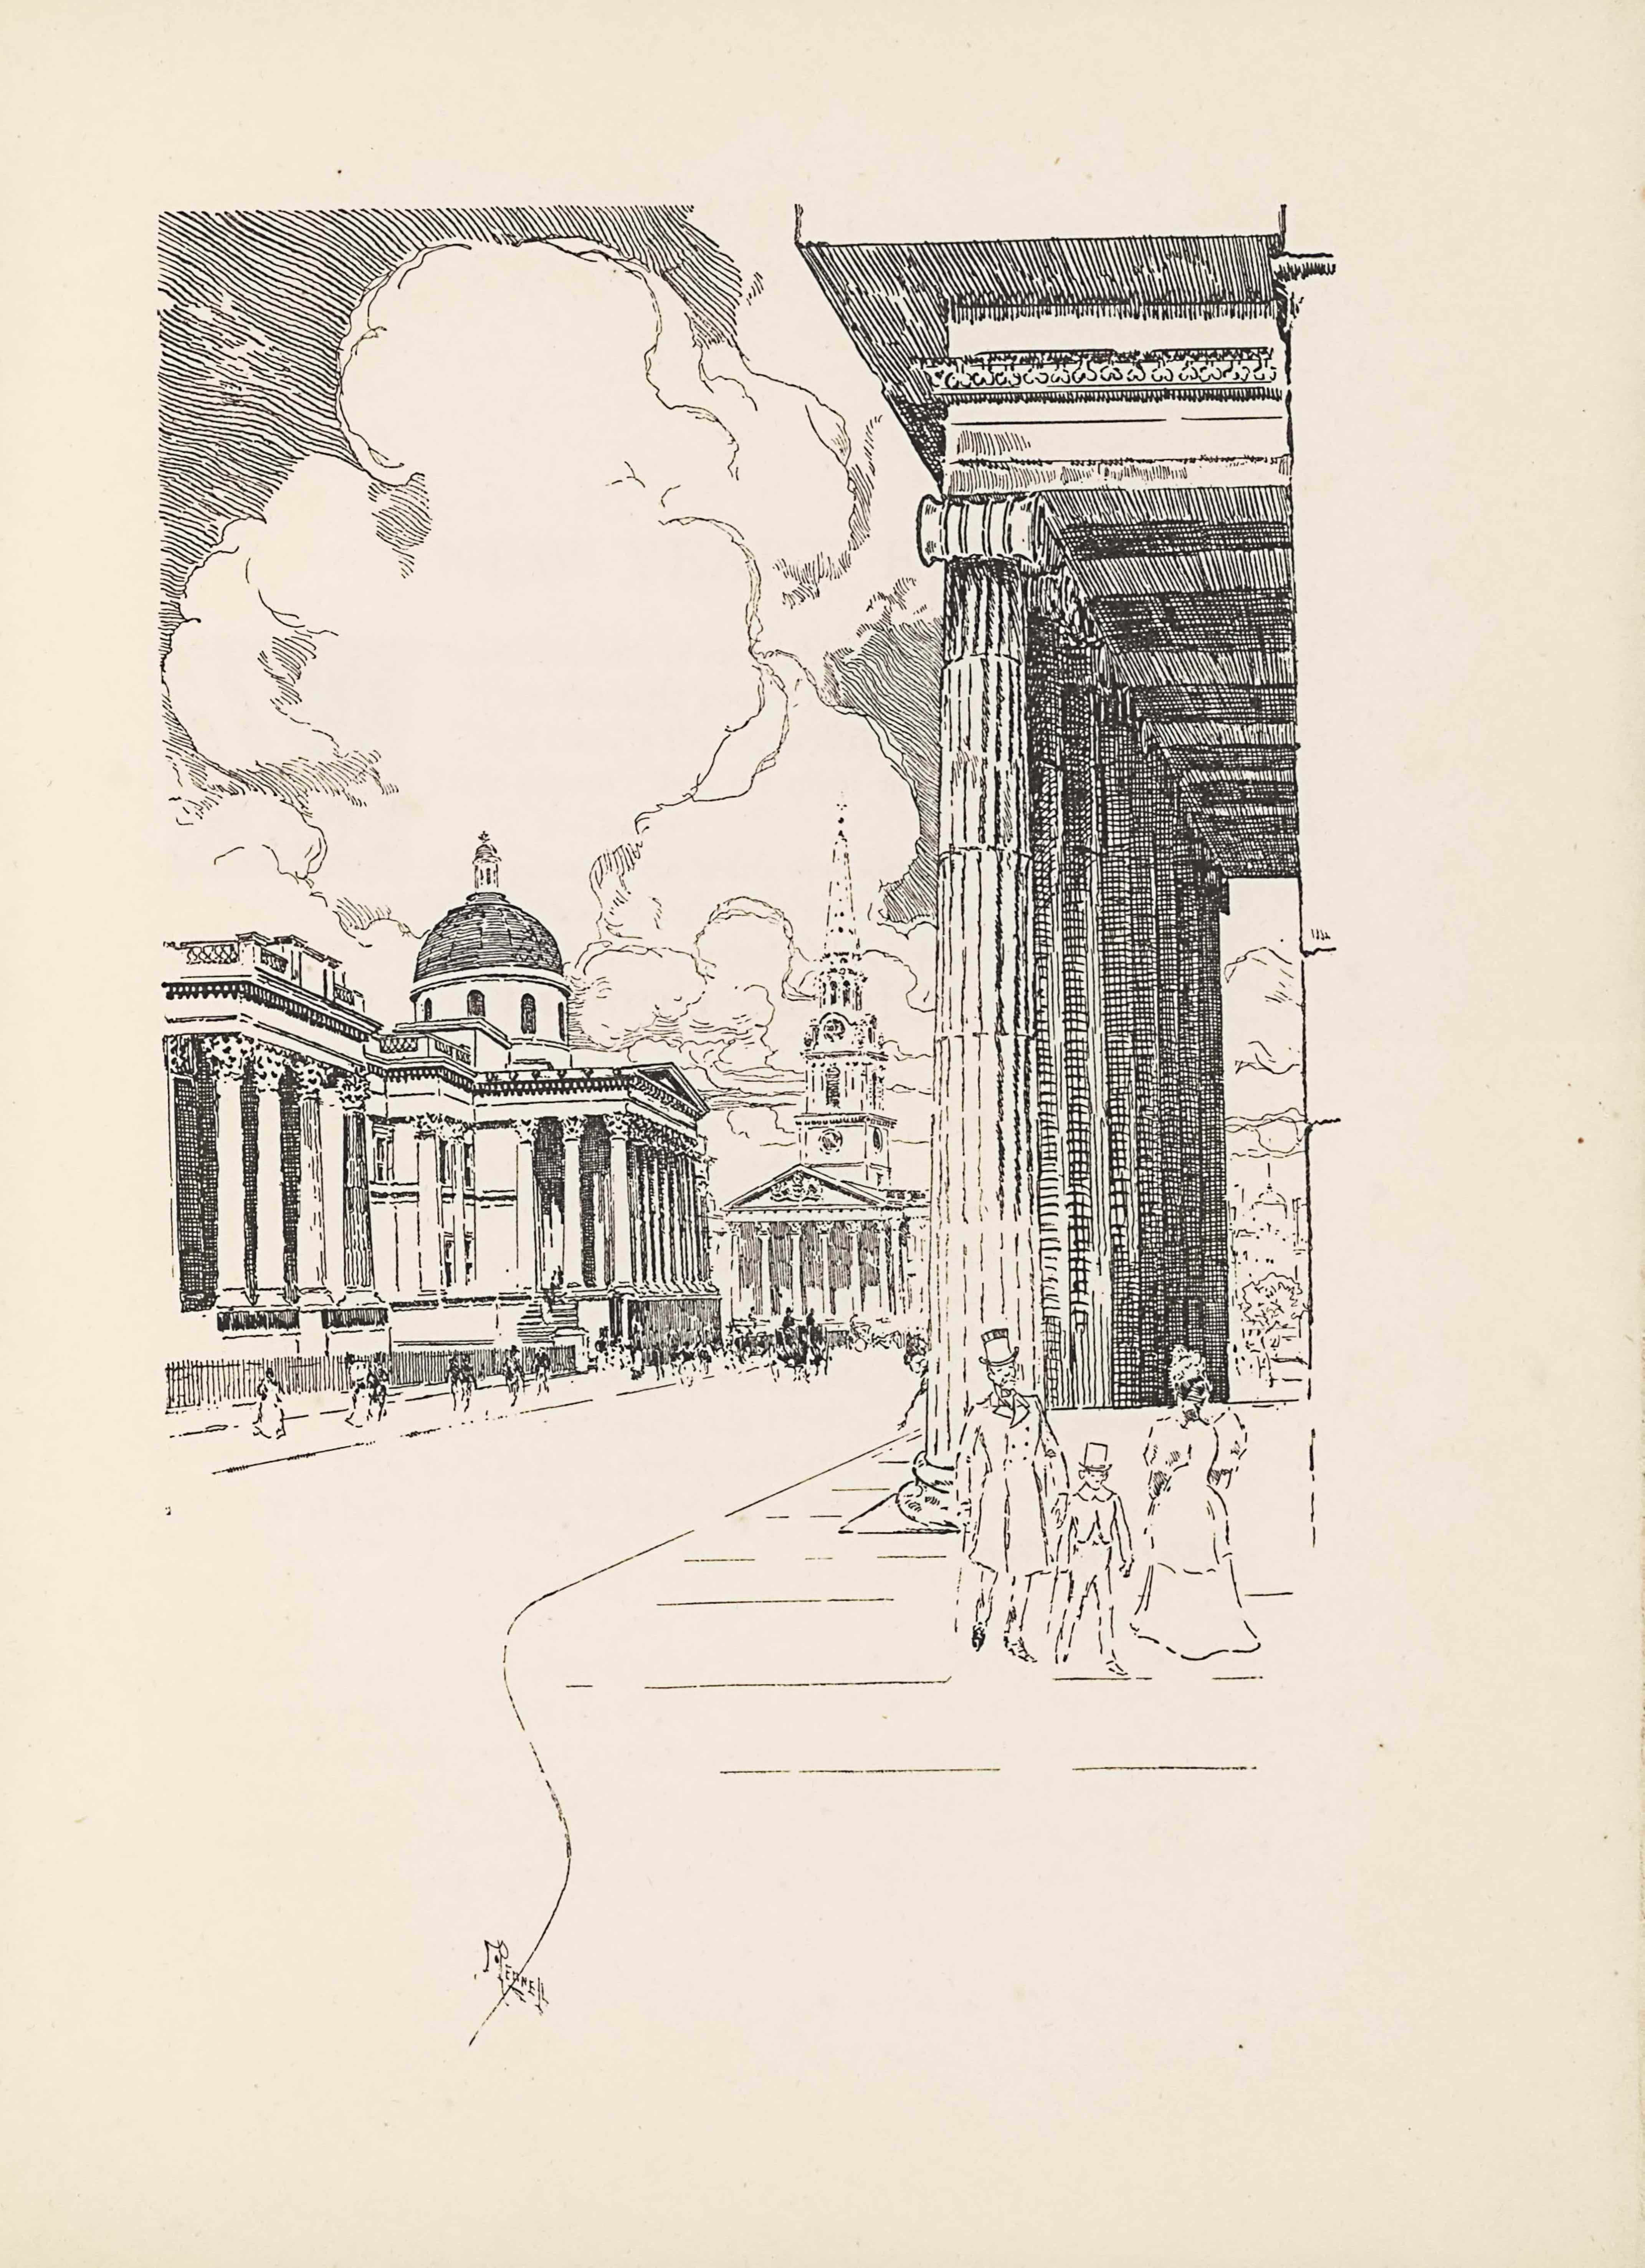 "The line block image is in portrait orientation. The viewer stands at street level, looking from the sidewalk into the city of London toward the Dome of St Paul's Cathedral. The foreground is cut into two sections: the road is pictured on the left third, and the sidewalk on the right two-thirds. The sidewalk has horizontal lines every few feet. A third of the way up the page, on the right-hand side, a man, child , and woman walk toward the viewer. The man, situated on the left of this group, is wearing a top hat and a long double-breasted overcoat that falls to just below his knees. He is mid-step and has his chest puffed forward with his hands out slightly from his body. The boy beside him on the right is half his height, also wearing a top hat, and cut-away coat and pants. The woman to the right is wearing a floor-length dress with puffy sleeves that end at her elbow. She is wearing a hat. Behind these three figures on the right side of the page is the profile of a large building with eight tall pillars holding up a roof that juts out over the sidewalk. The roof is partially visible at the top edge of the page, and the building itself is outside the frame on the right side of the page. Looking straight through the space between the pillars at the building front, the buildings at the end of the street are visible. The road is empty and free of any vehicles. In the far distance, a coach and horses appear on the road, headed off into the distance. In the mid-ground on the left side of the page is another pillared building, but this one looks much smaller because of perspective. The pillars hold up a roof that extends further out to the road in some spots, and at the base of the pillars is an elevation that is raised above the ground at least double the height of a person. The building has a sidewalk in front of it and on the sidewalk groups of people gather, walking towards the distance. In the distance on the left side of the page a dome protrudes above the roof of the pillared building. In the central background is a church steeple with six pillars holding up an A-line roof at the front. The steeple has an extremely tall and pointed column rising up from the middle, above two stacked square rooms that are smaller than the main building. On the front of the bottom stacked room is a clock face that appears just above the A-line roof. Above the clock face, in the second stacked room is a large front-facing window. Just above the window is a circular windowed room. On top of the stacked rooms is the pointed extension of a column, topped by a weathervane or cross. The sky behind the city scape has huge clouds blooming up and out. In the very foreground, on the line separating sidewalk from road, is the artist's signature: ""PENNELL"" [caps] with two lines underlining the partial text ""ENNE"" [caps] in the name."